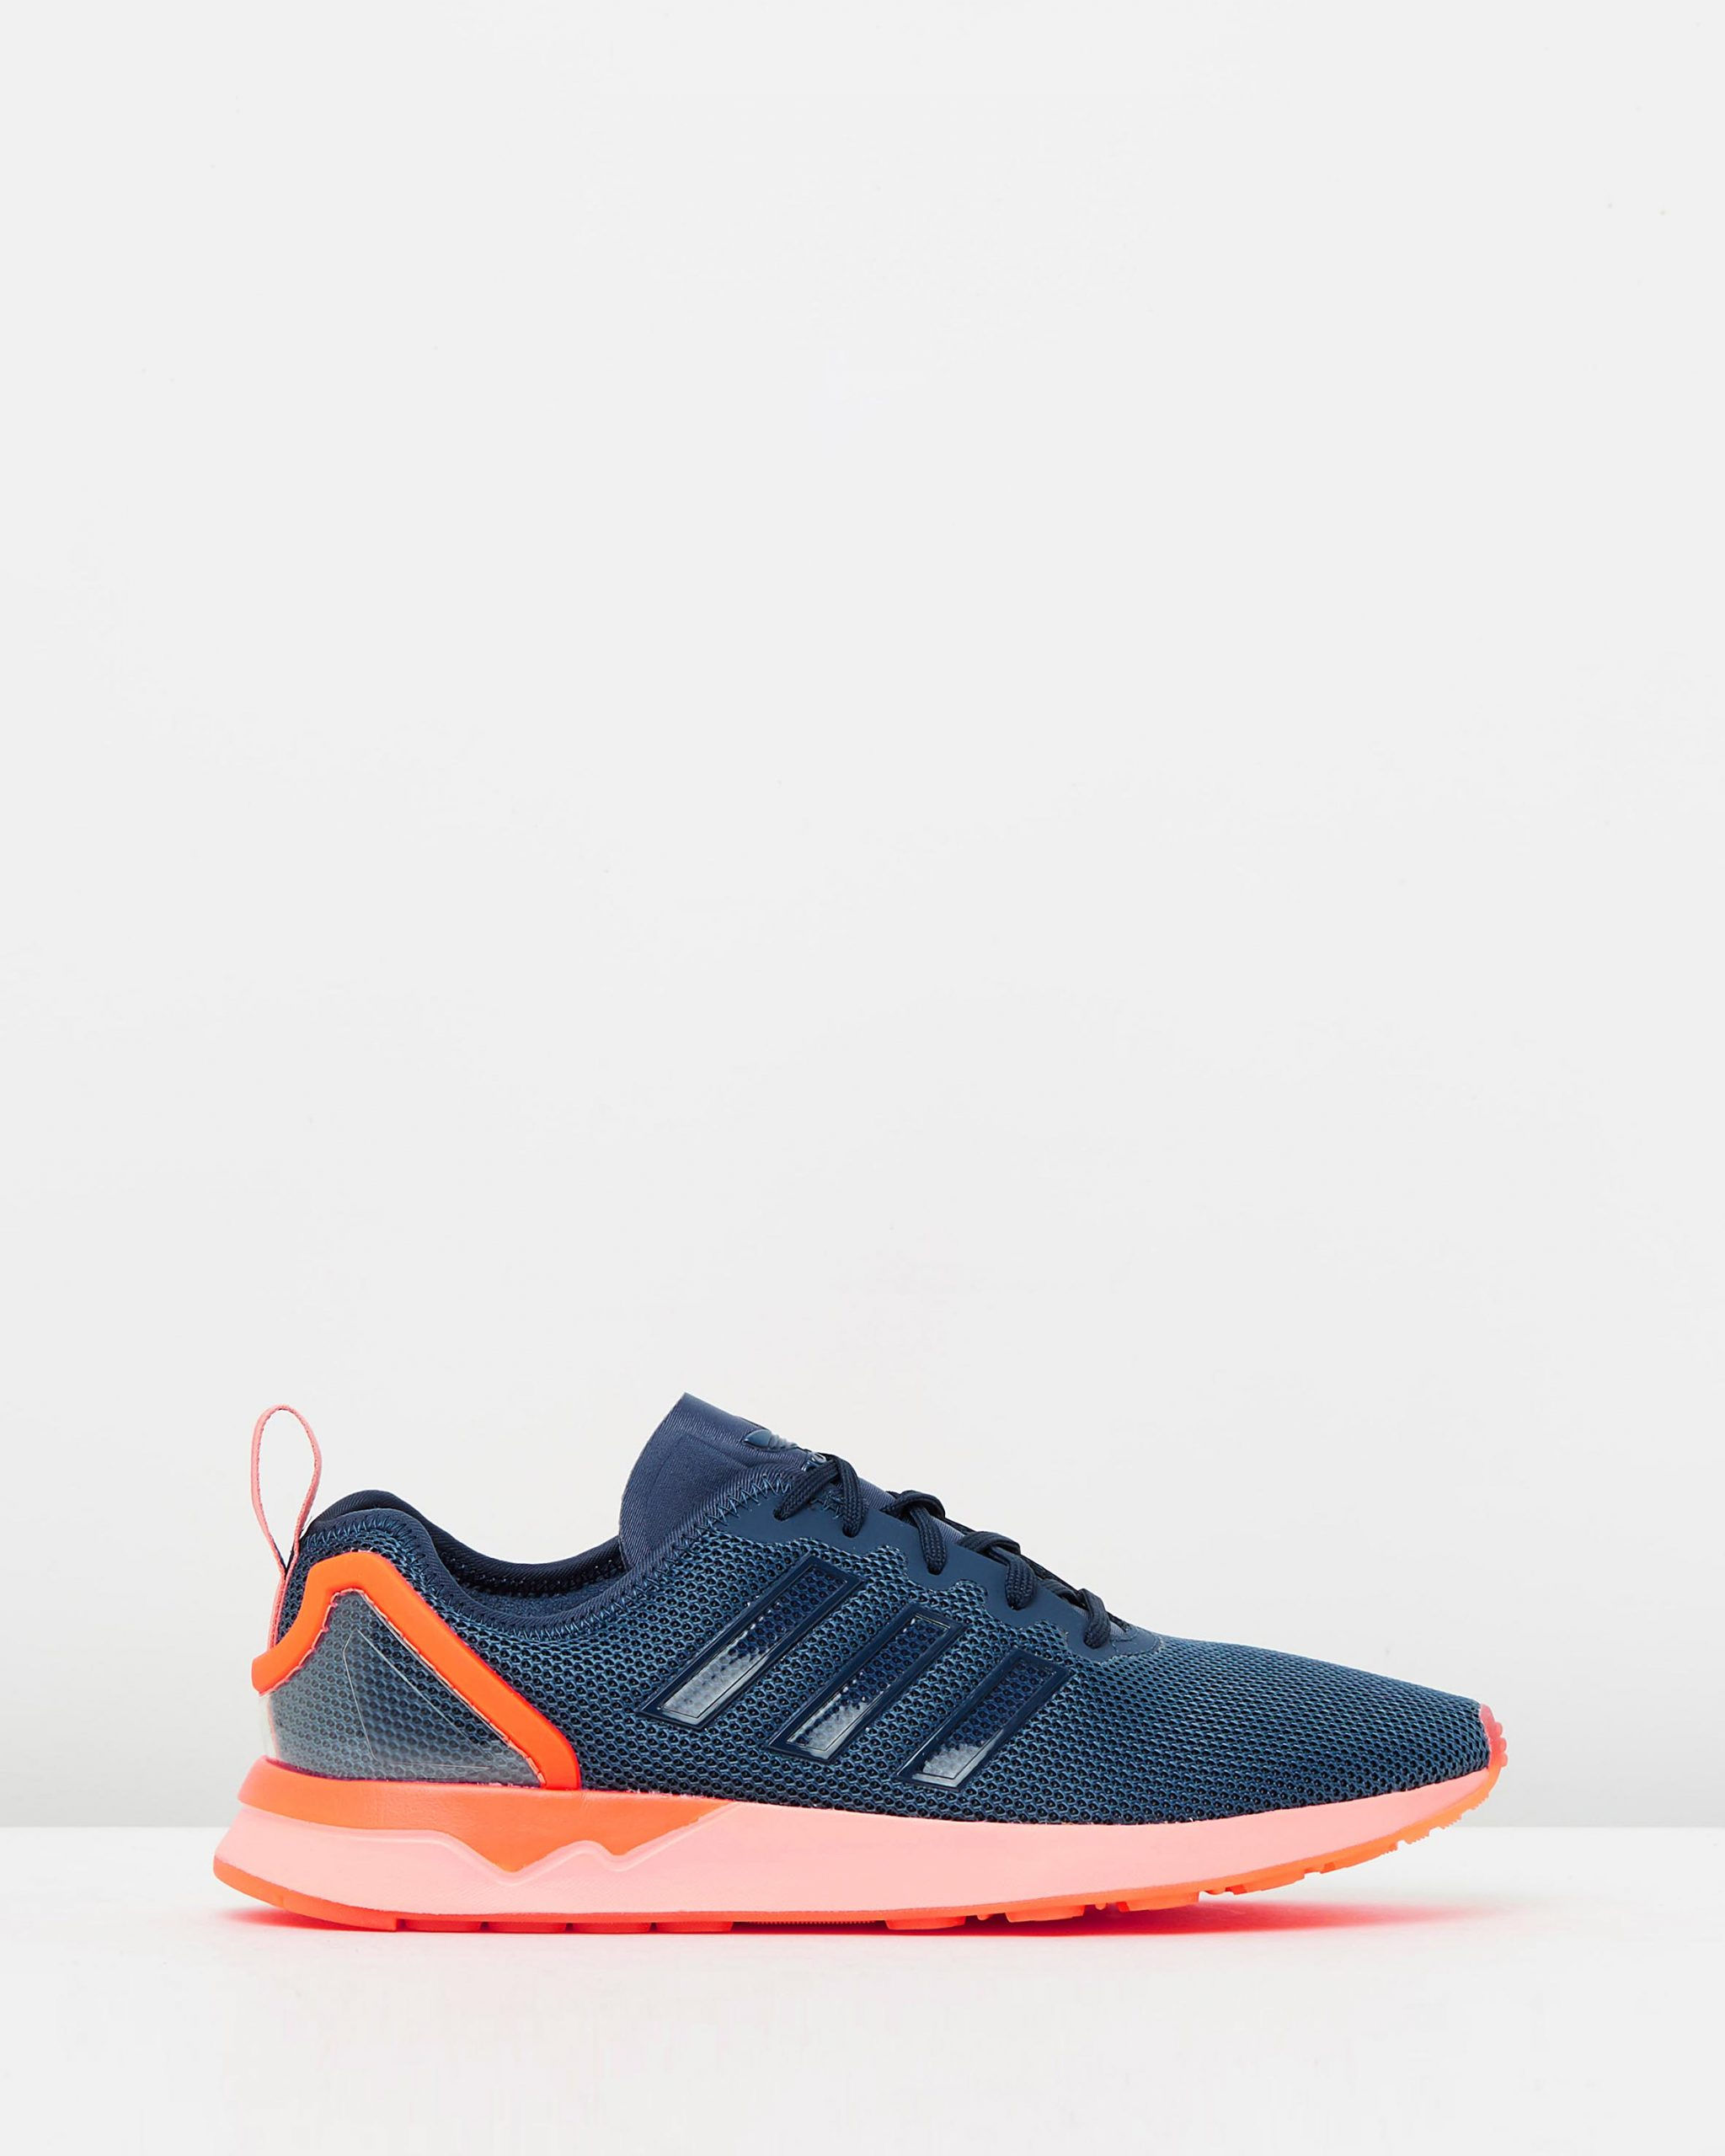 Adidas ZX Flux ADV Blue & Orange